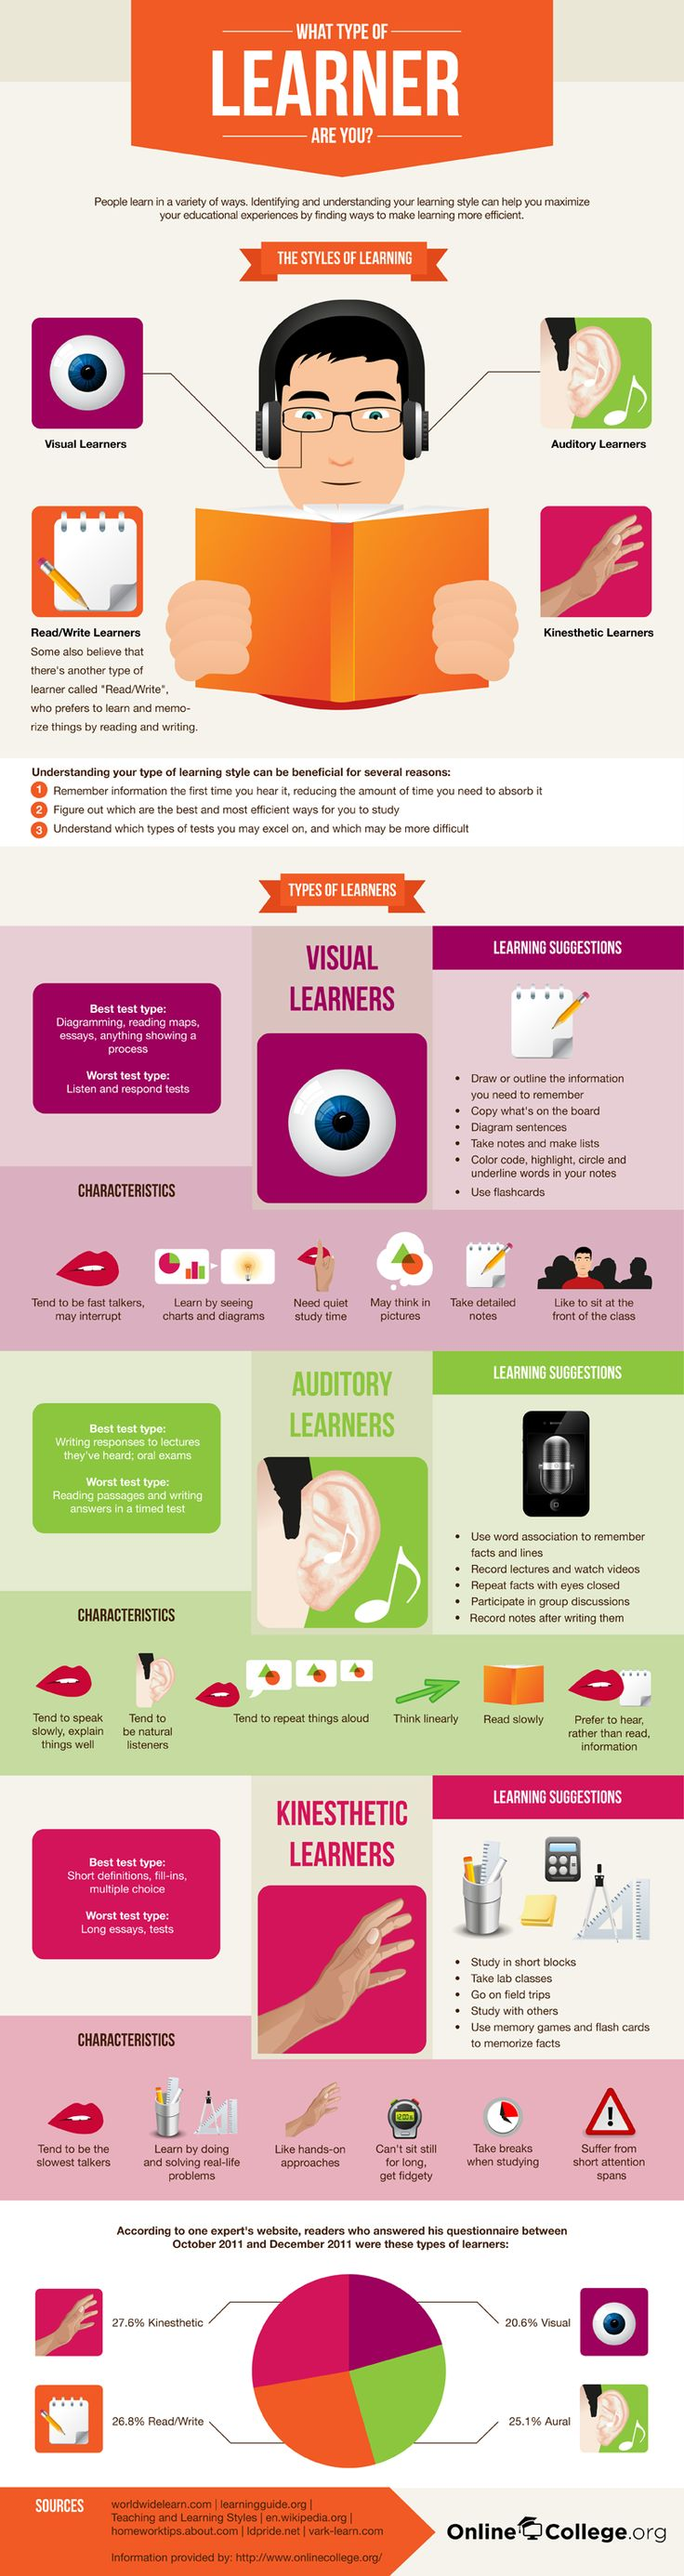 best ideas about visual learning learning styles 17 best ideas about visual learning learning styles learning and teaching strategies